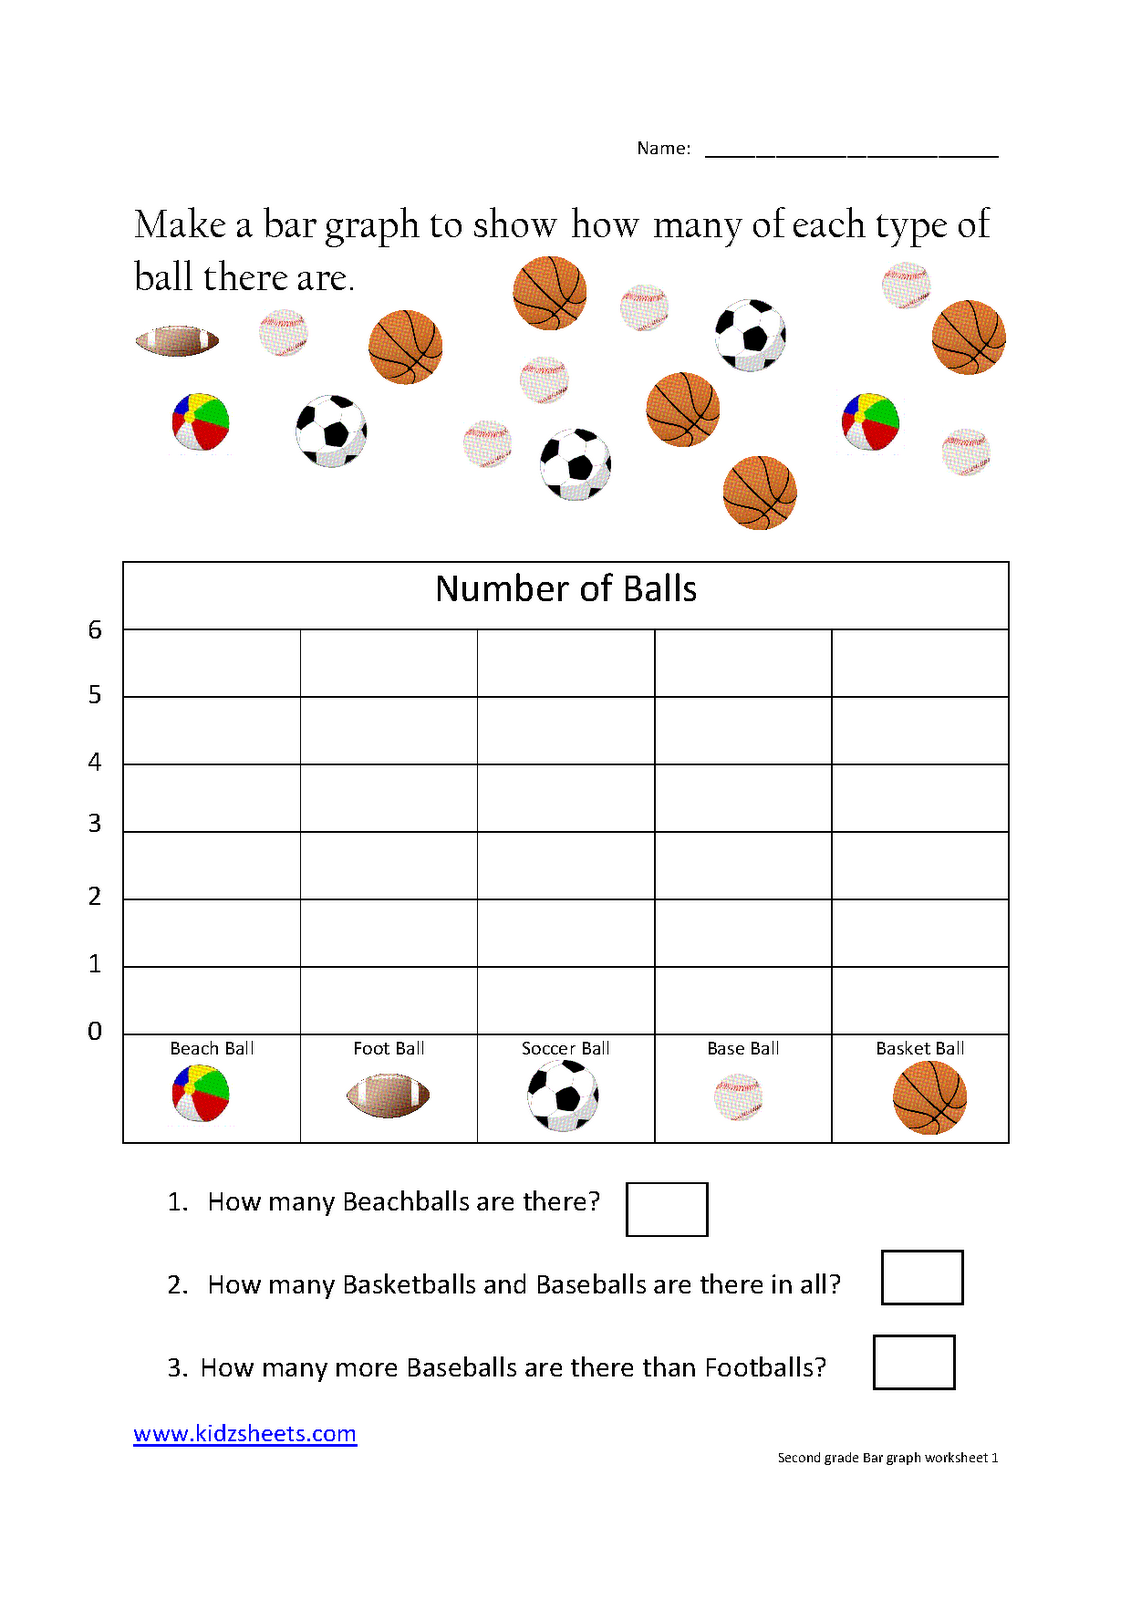 Worksheets Graphing Pictures Worksheets kidz worksheets second grade bar graph worksheet1 graph